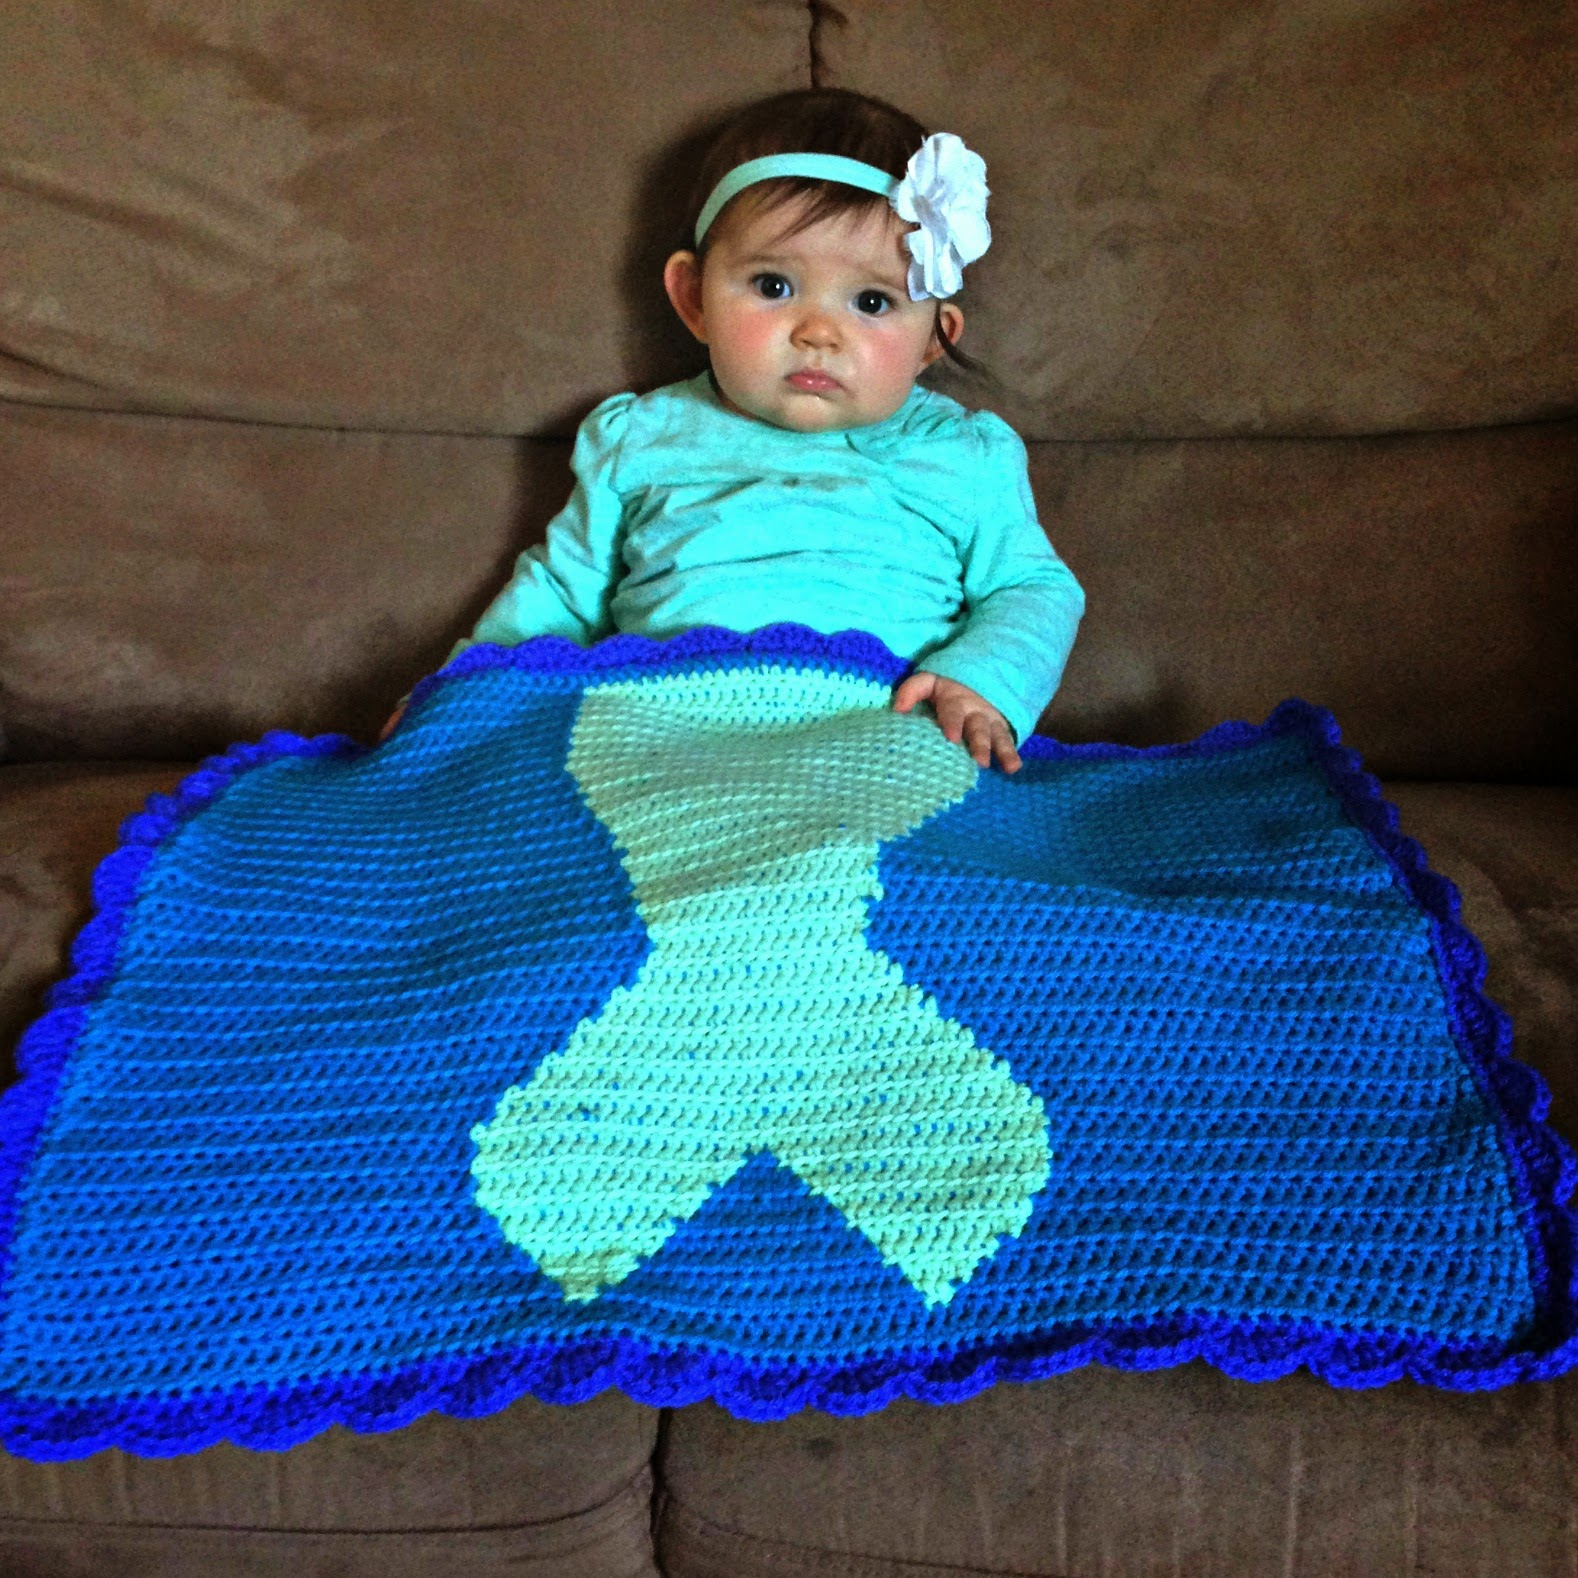 Baby Mermaid Crochet Pattern Best Ideas